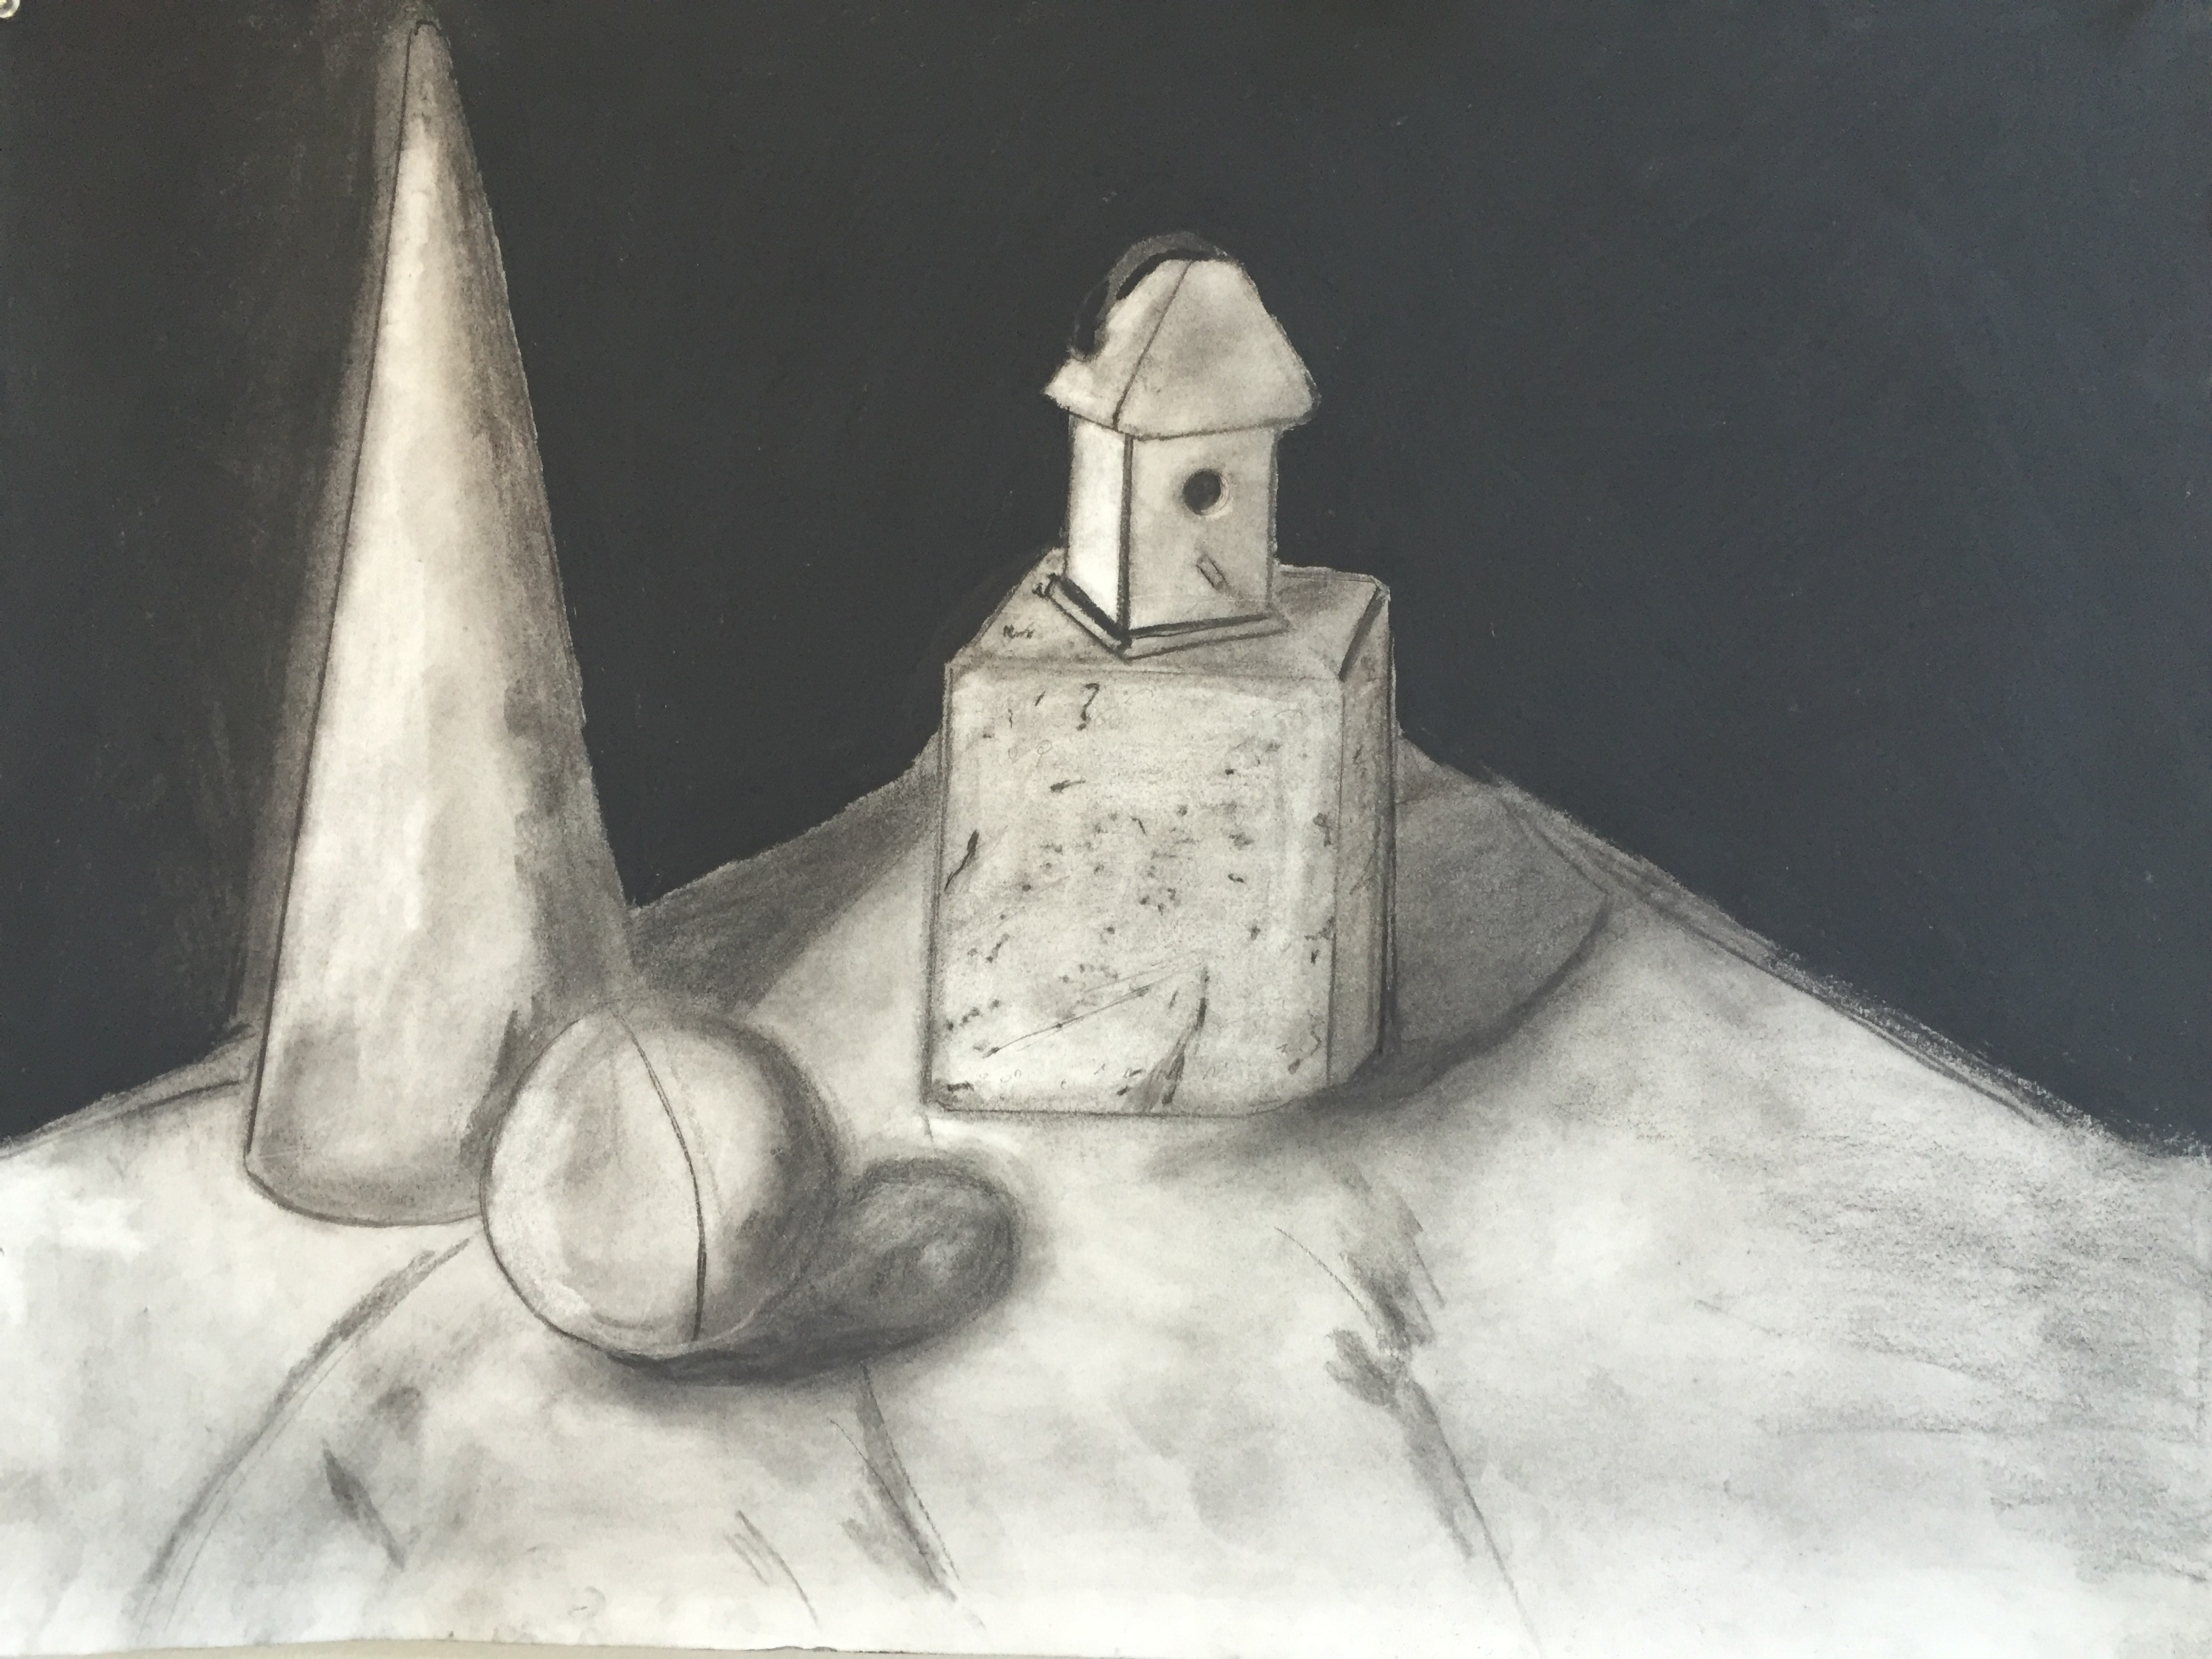 Geometrical Studies in Charcoal: Part I